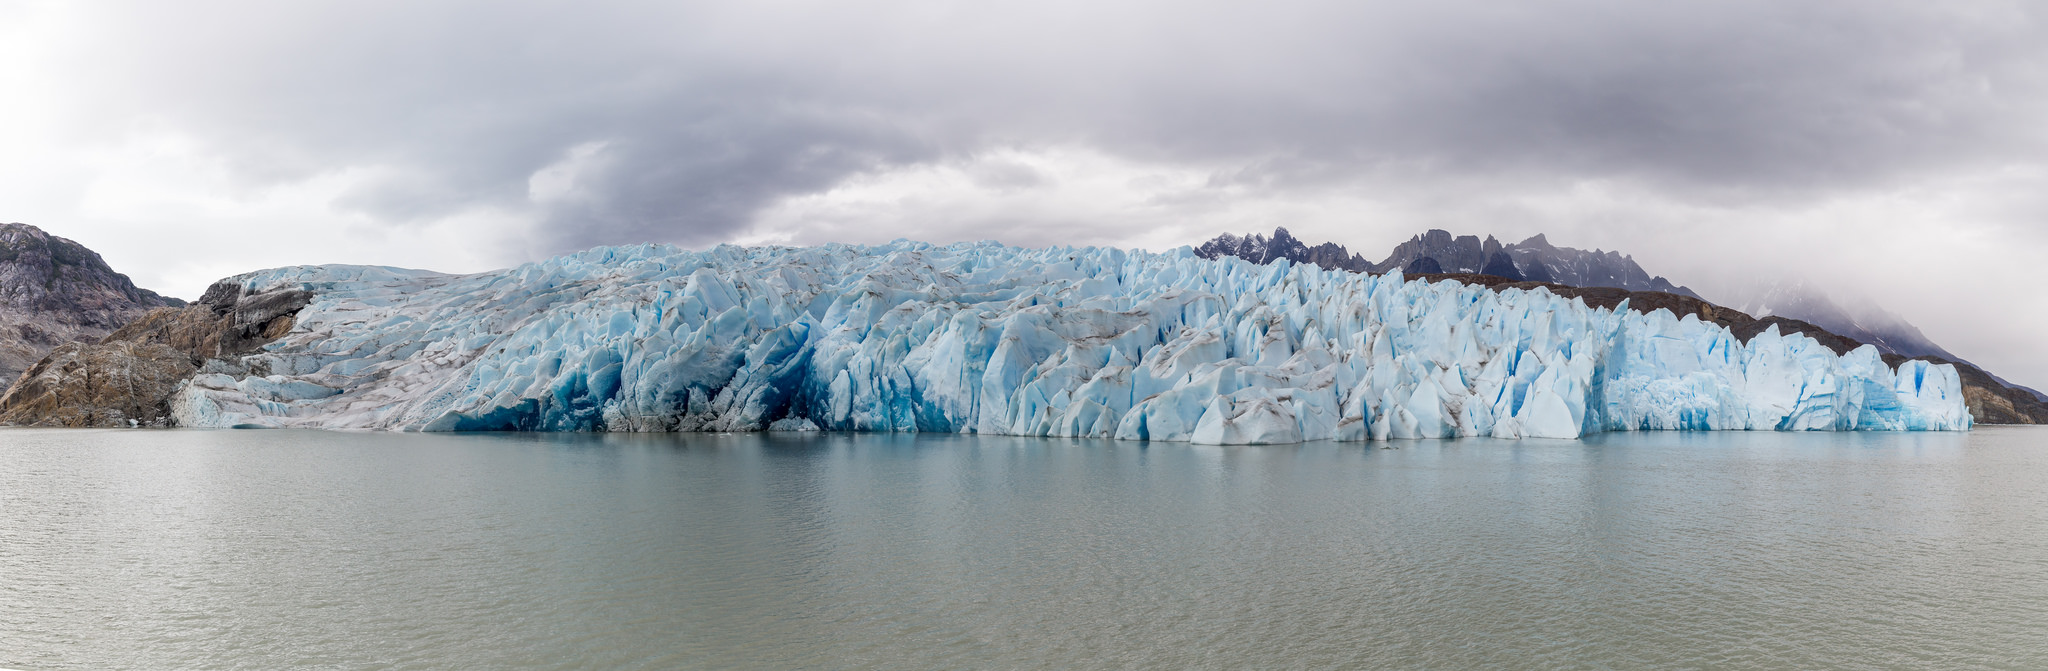 chile - grey glacier